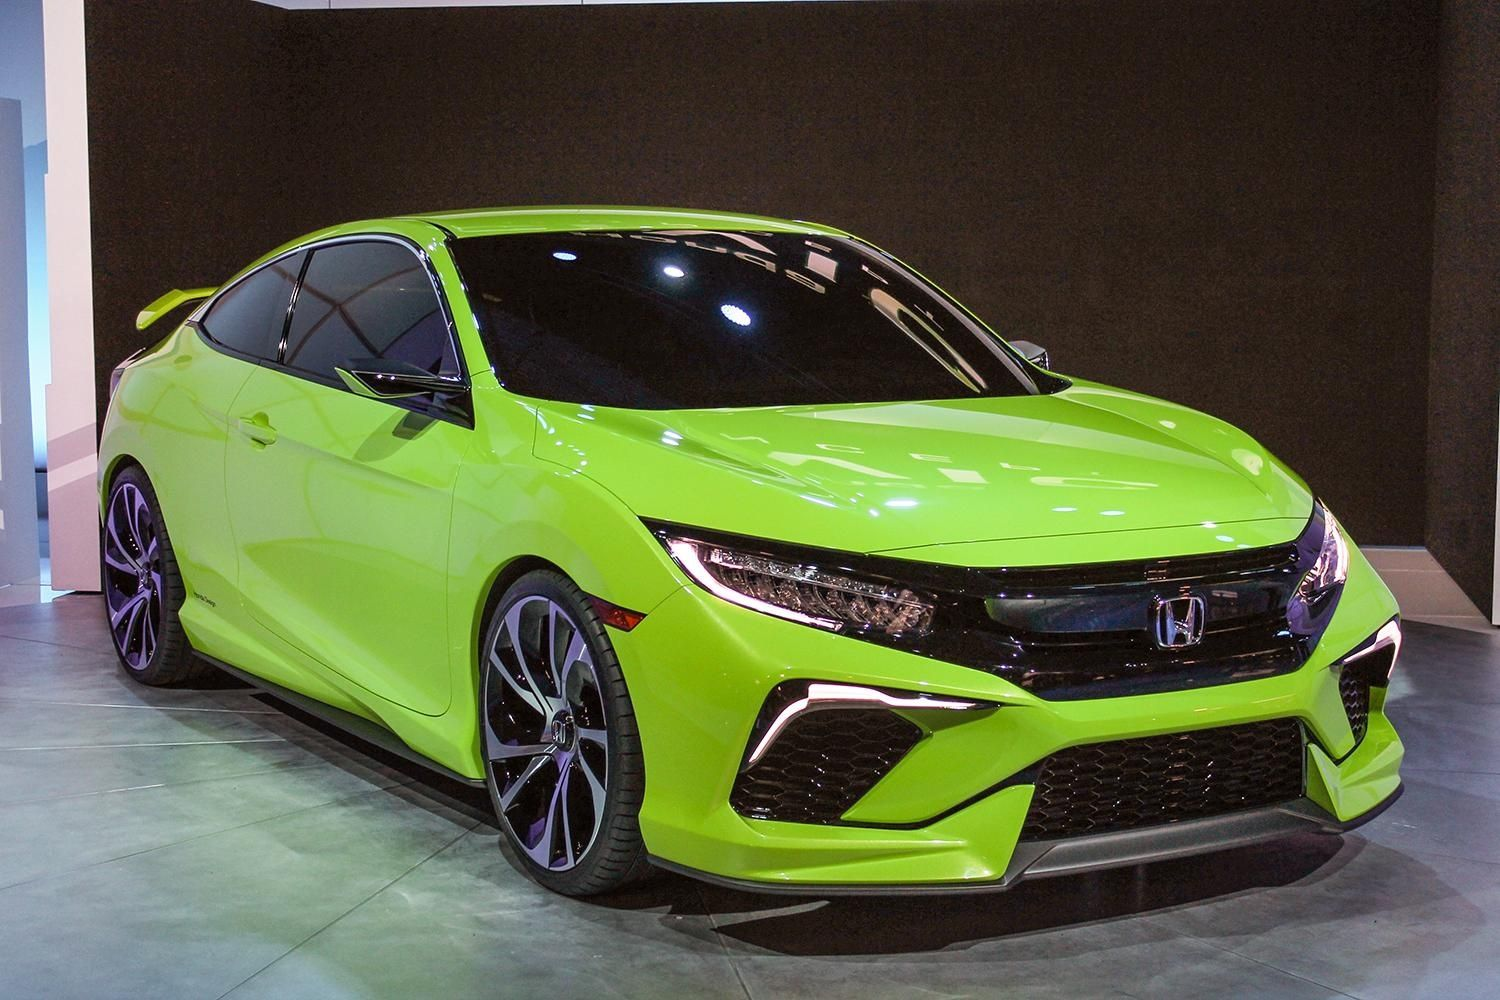 2016 Honda Civic (With images) Honda civic coupe, Honda